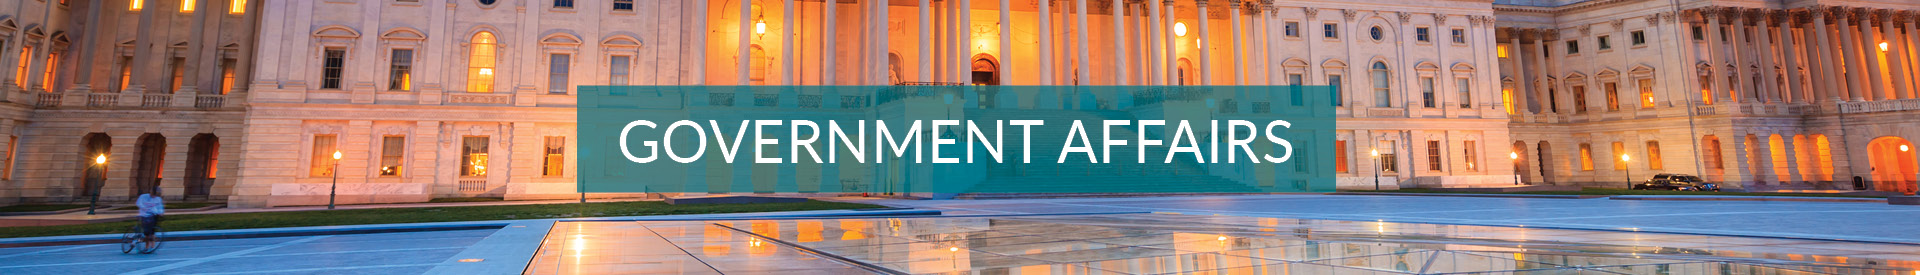 AORN Government Affairs